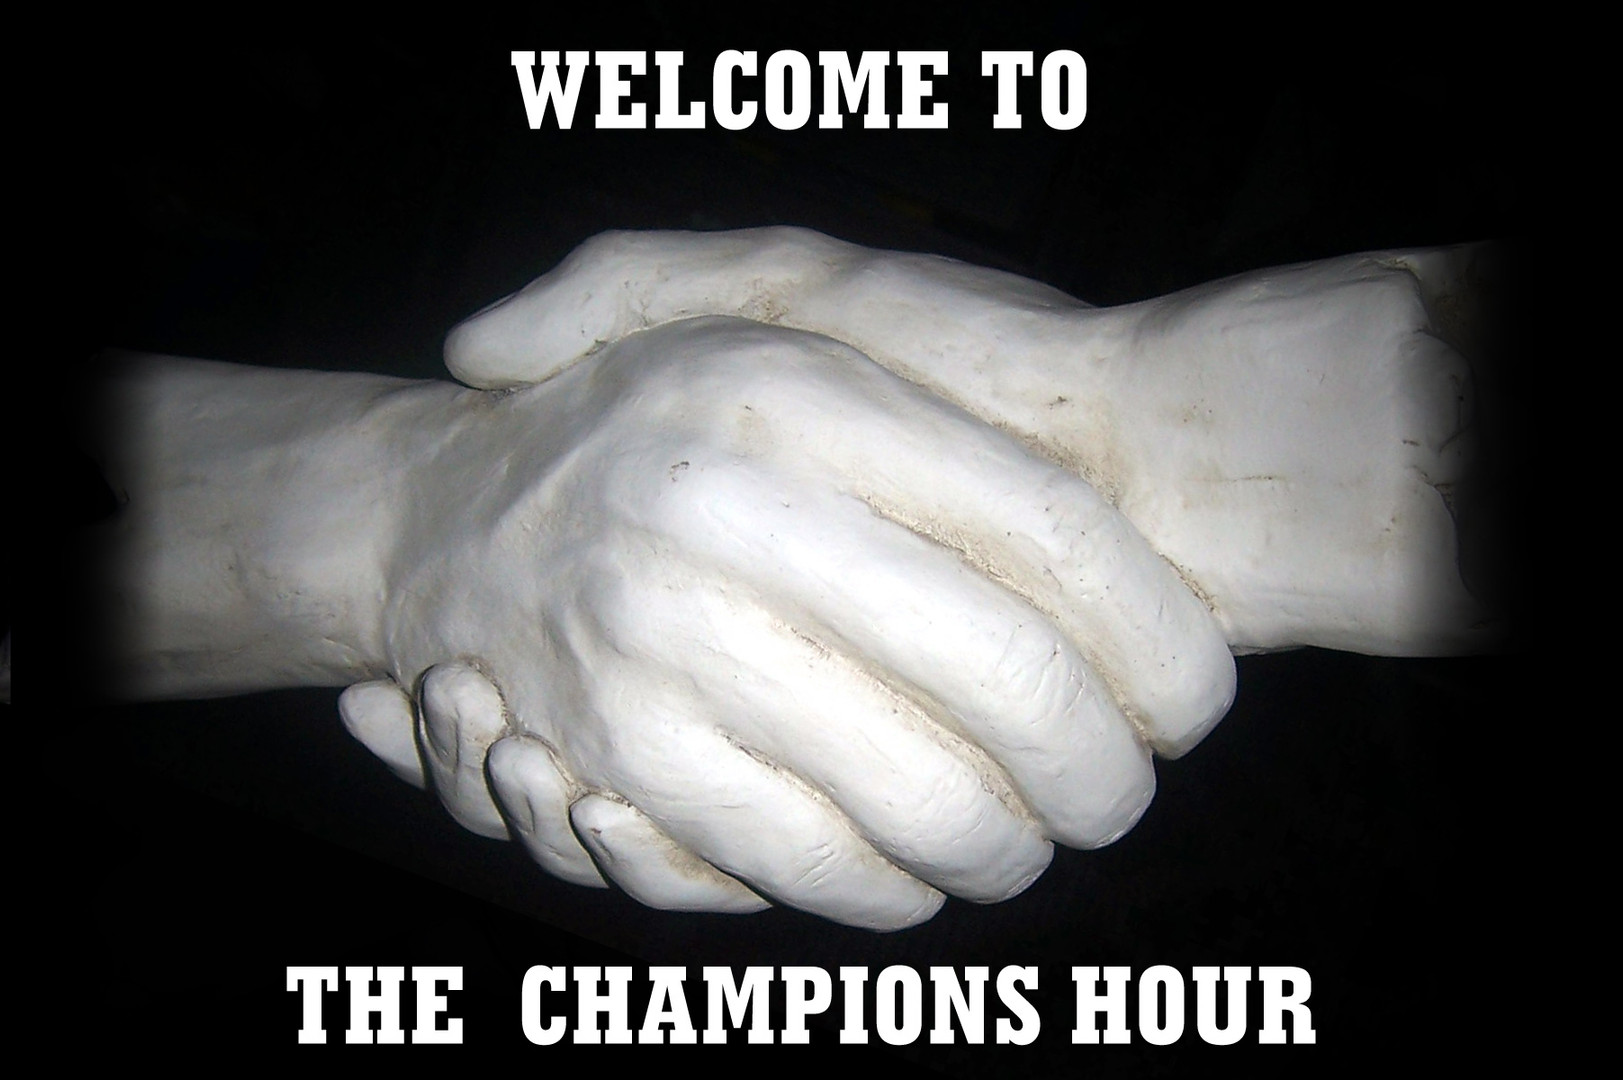 WELCOME_CHAMPIONS_HOUR.jpg